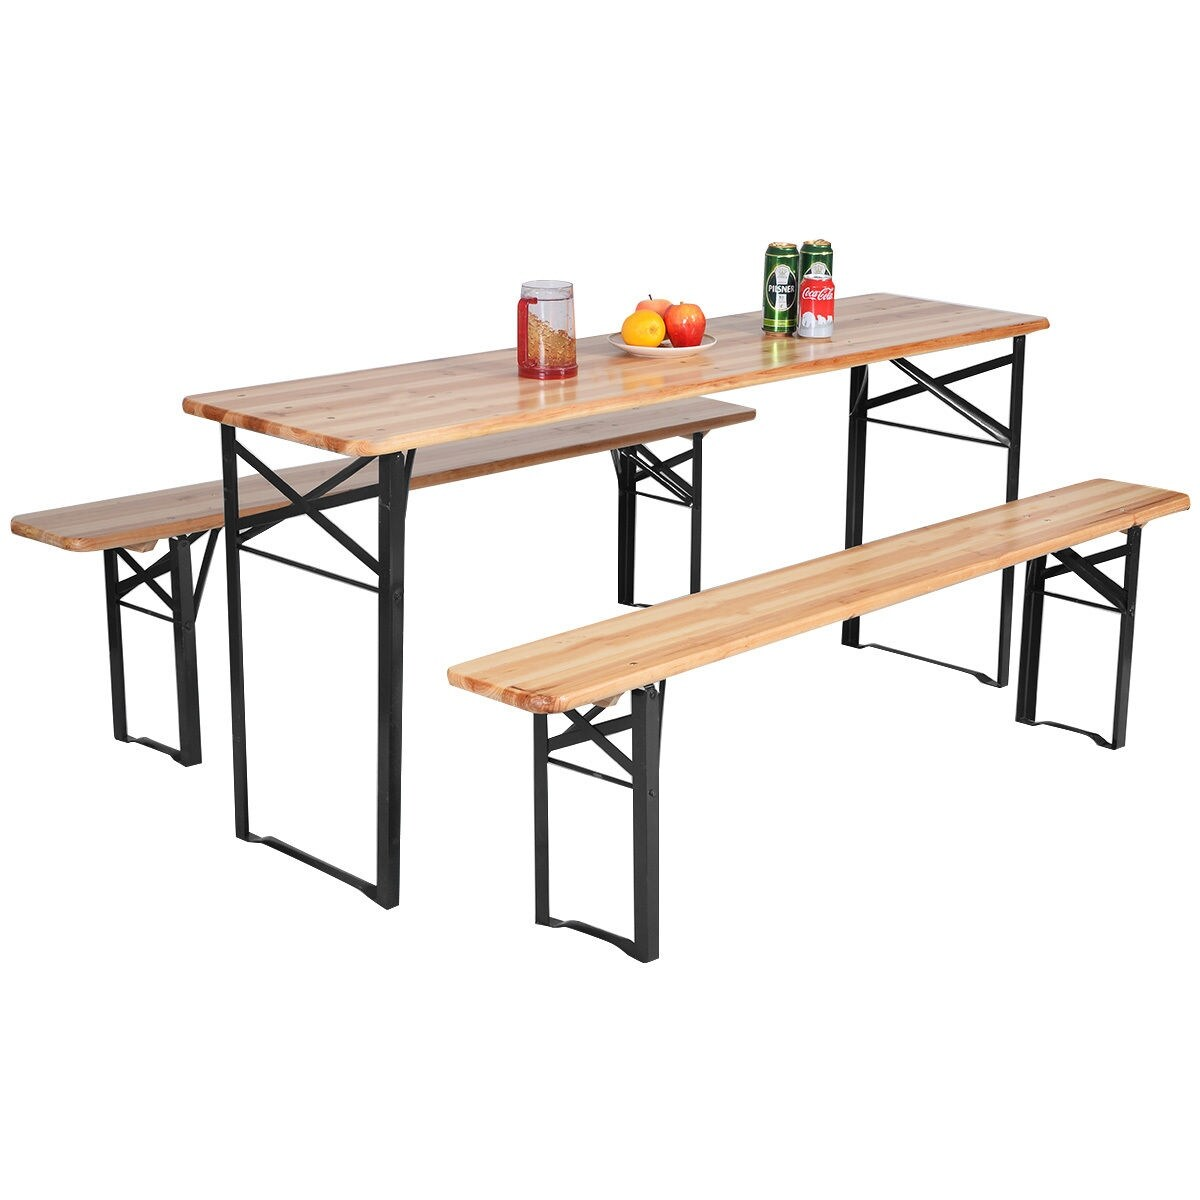 Wooden Bench Table Costway 3 Pcs Beer Table Bench Set Folding Wooden Top Picnic Table Patio Garden